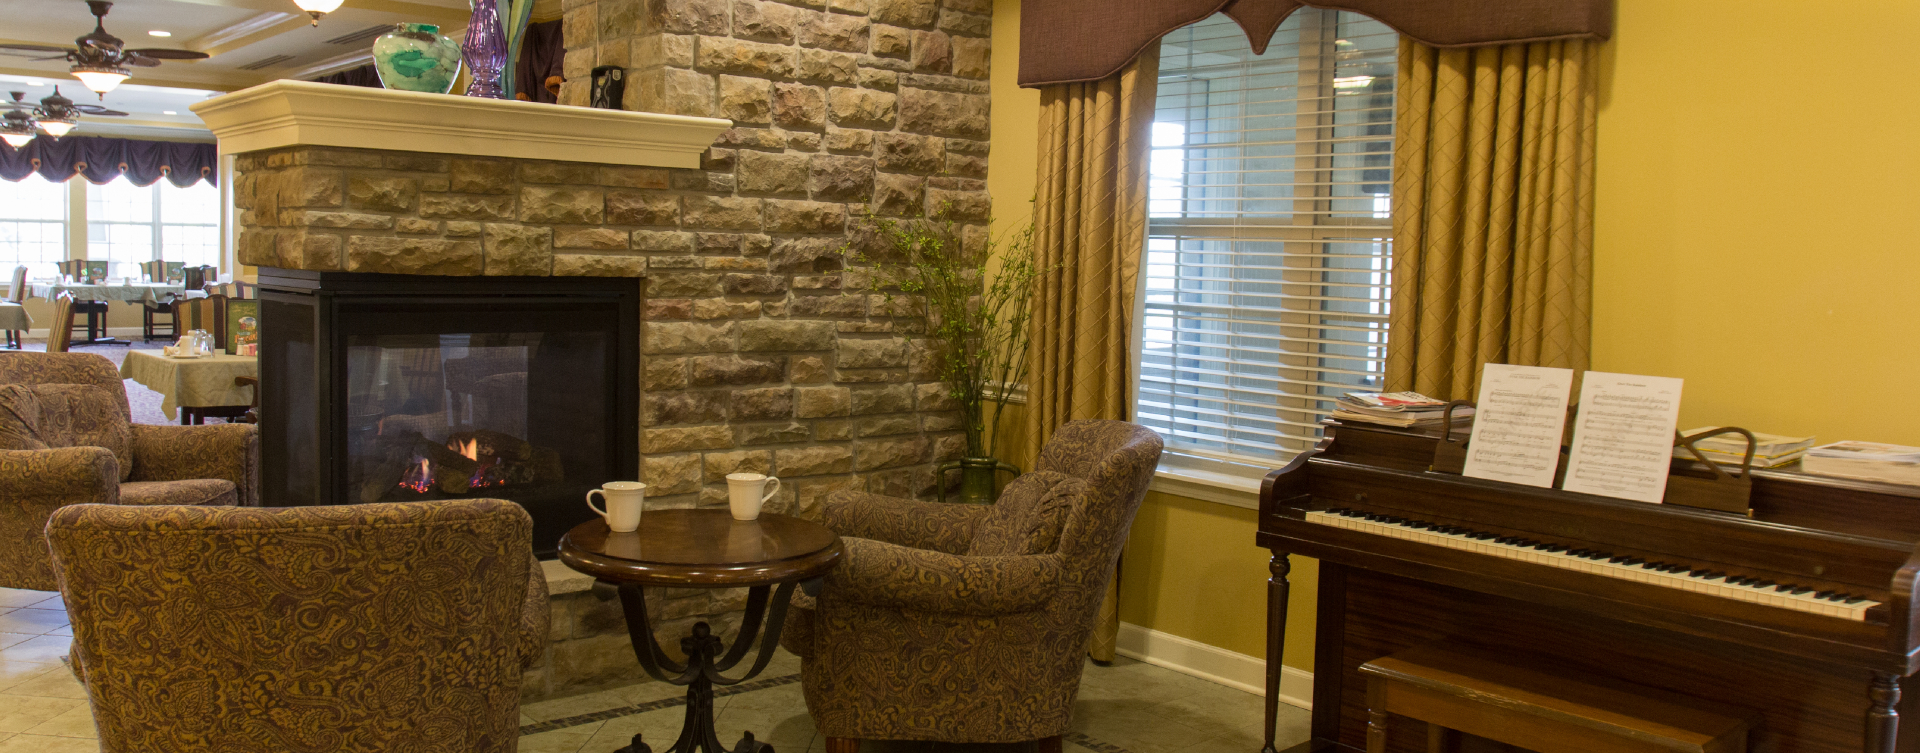 Enjoy a good book in the living room at Bickford of St. Charles